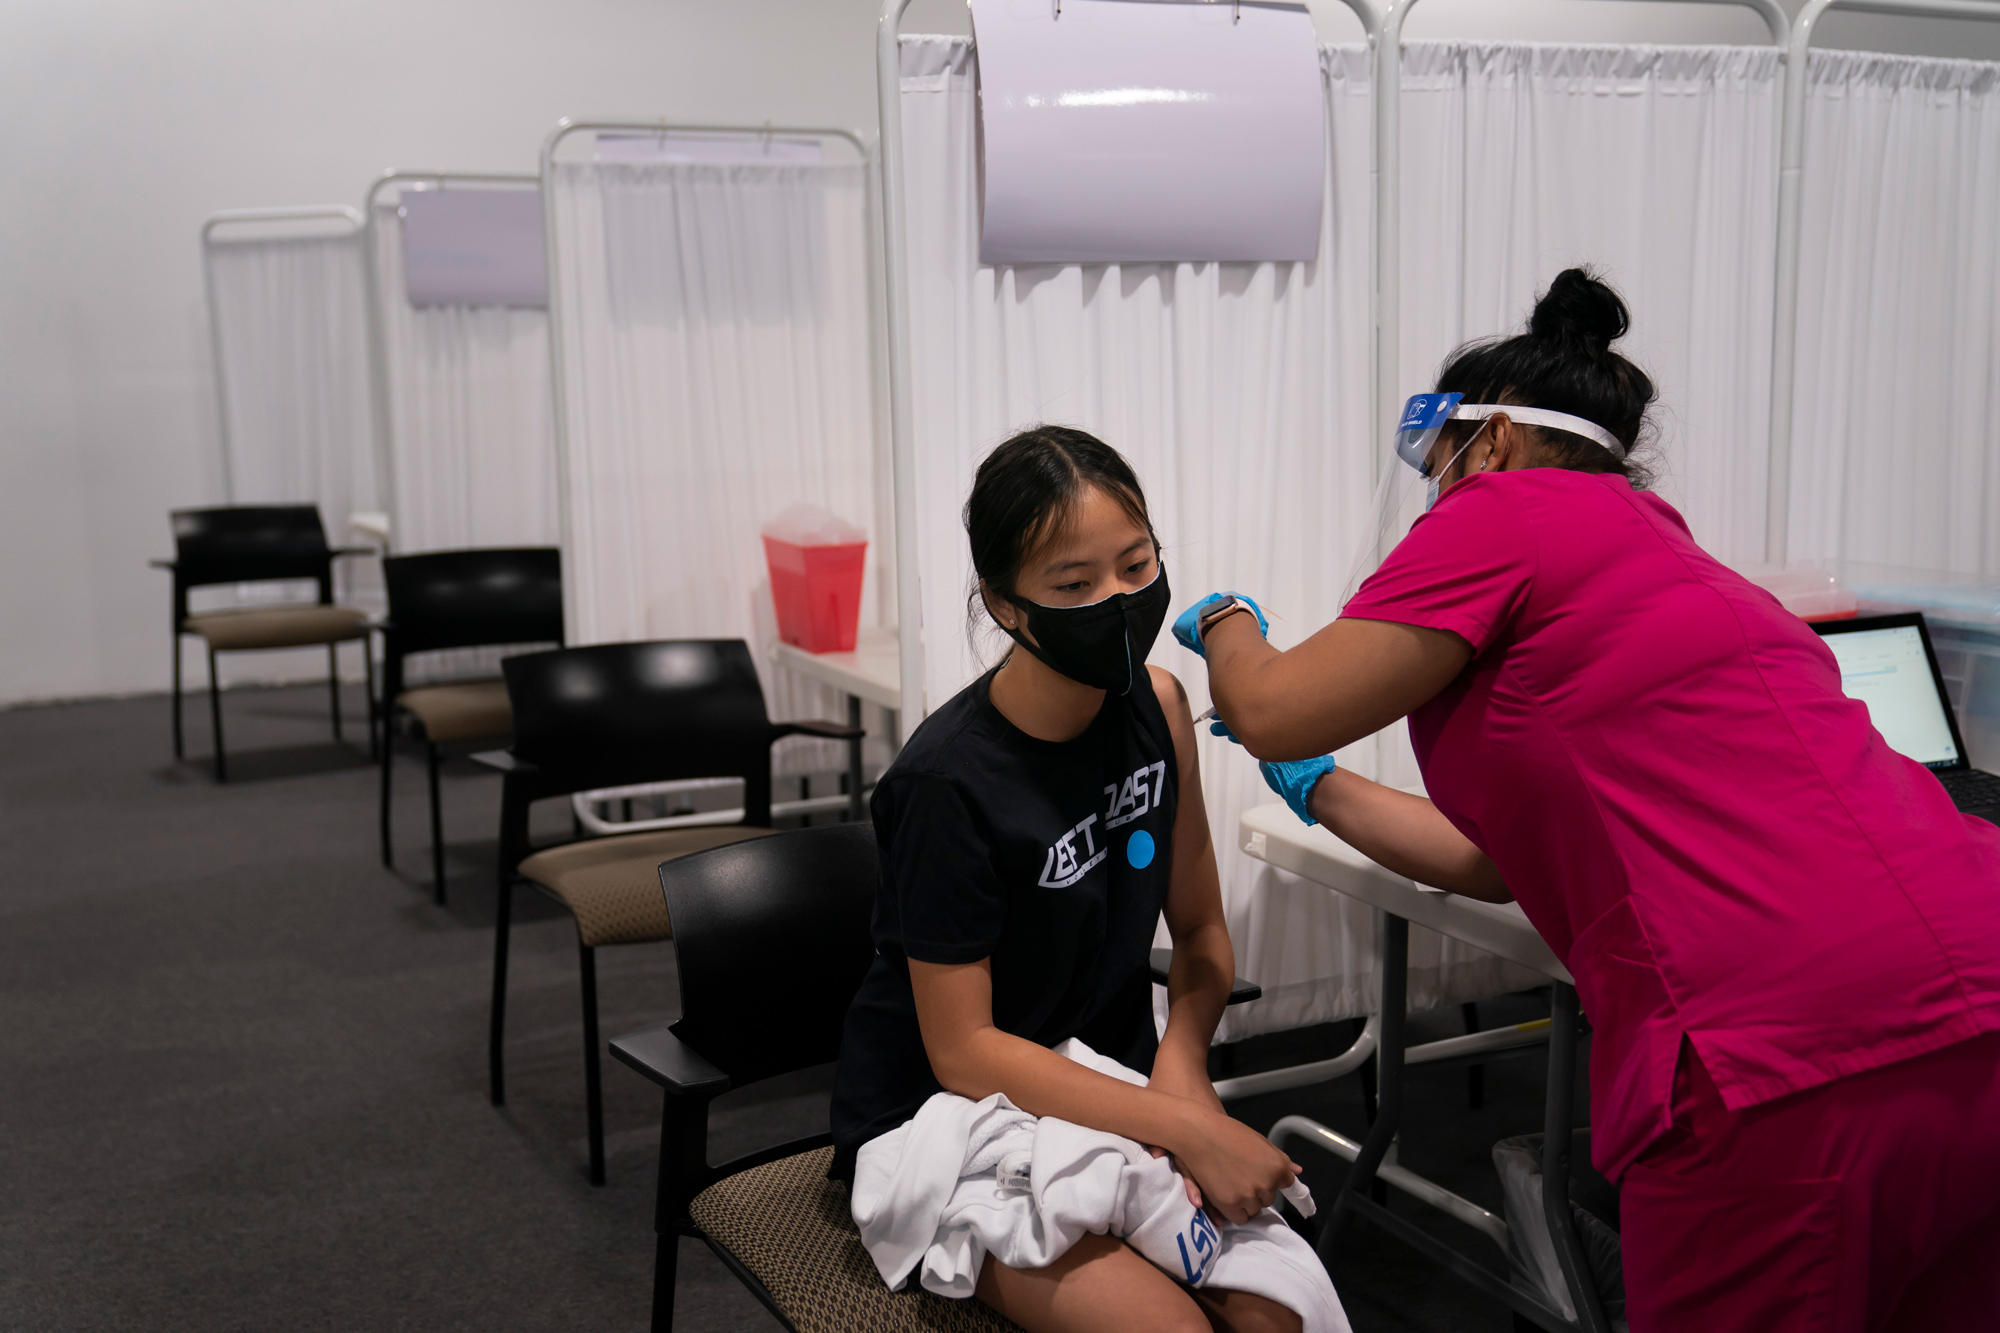 Payton Nguyen, 12, receives her first dose of the Pfizer COVID-19 vaccine from medical assistant Gloria Urgell at Providence Edwards Lifesciences vaccination site in Santa Ana, California, on May 13.